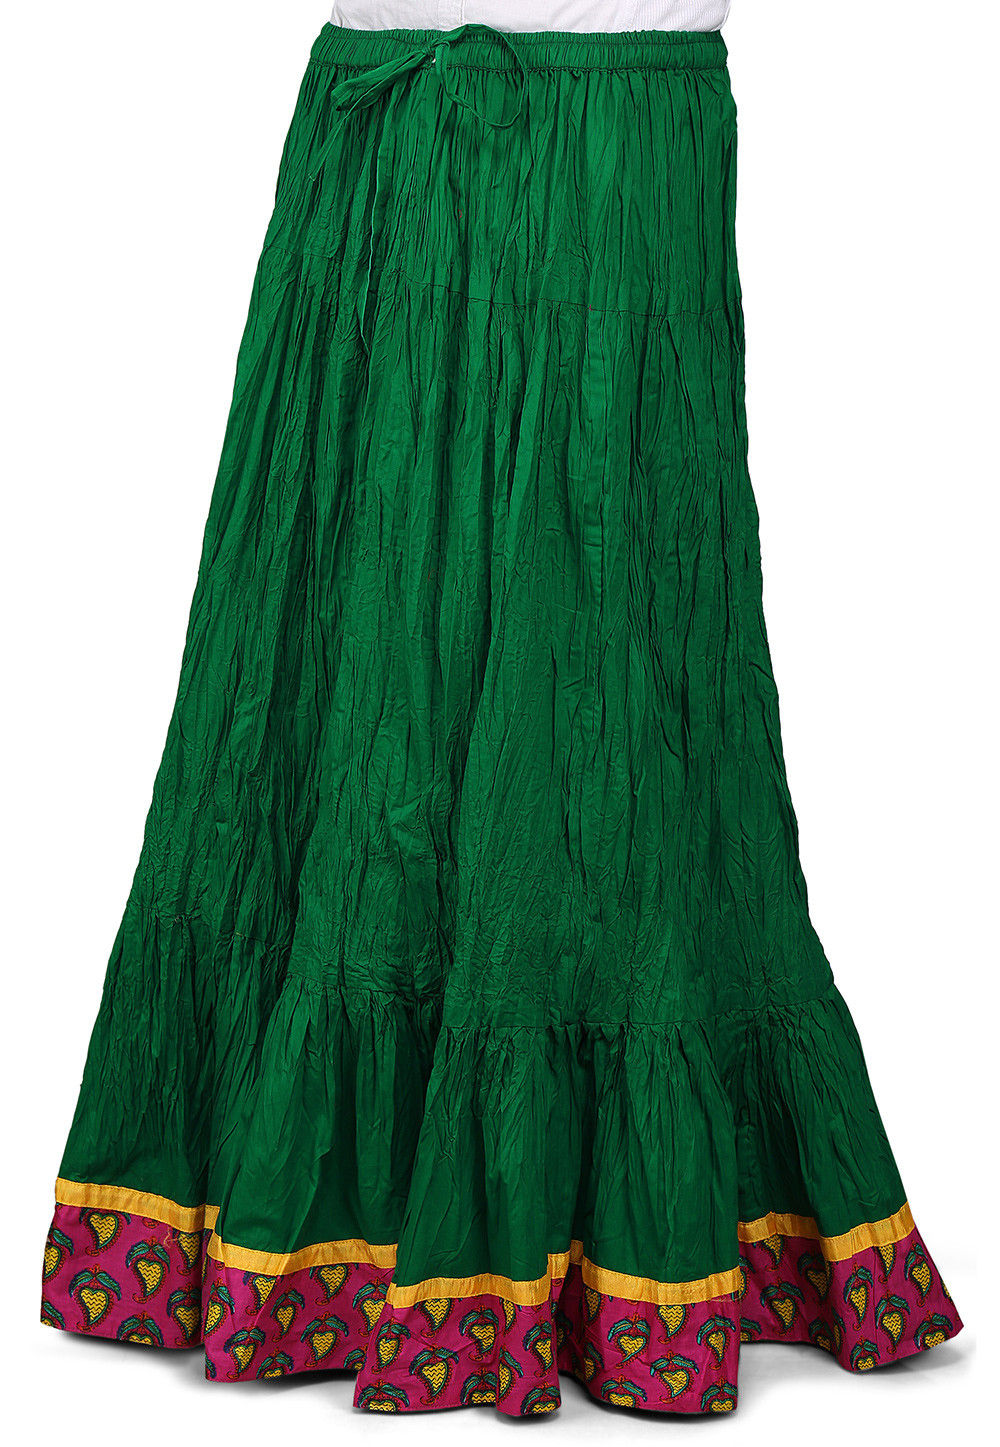 Contrast Patch Border Crushed Cotton Skirt in Green